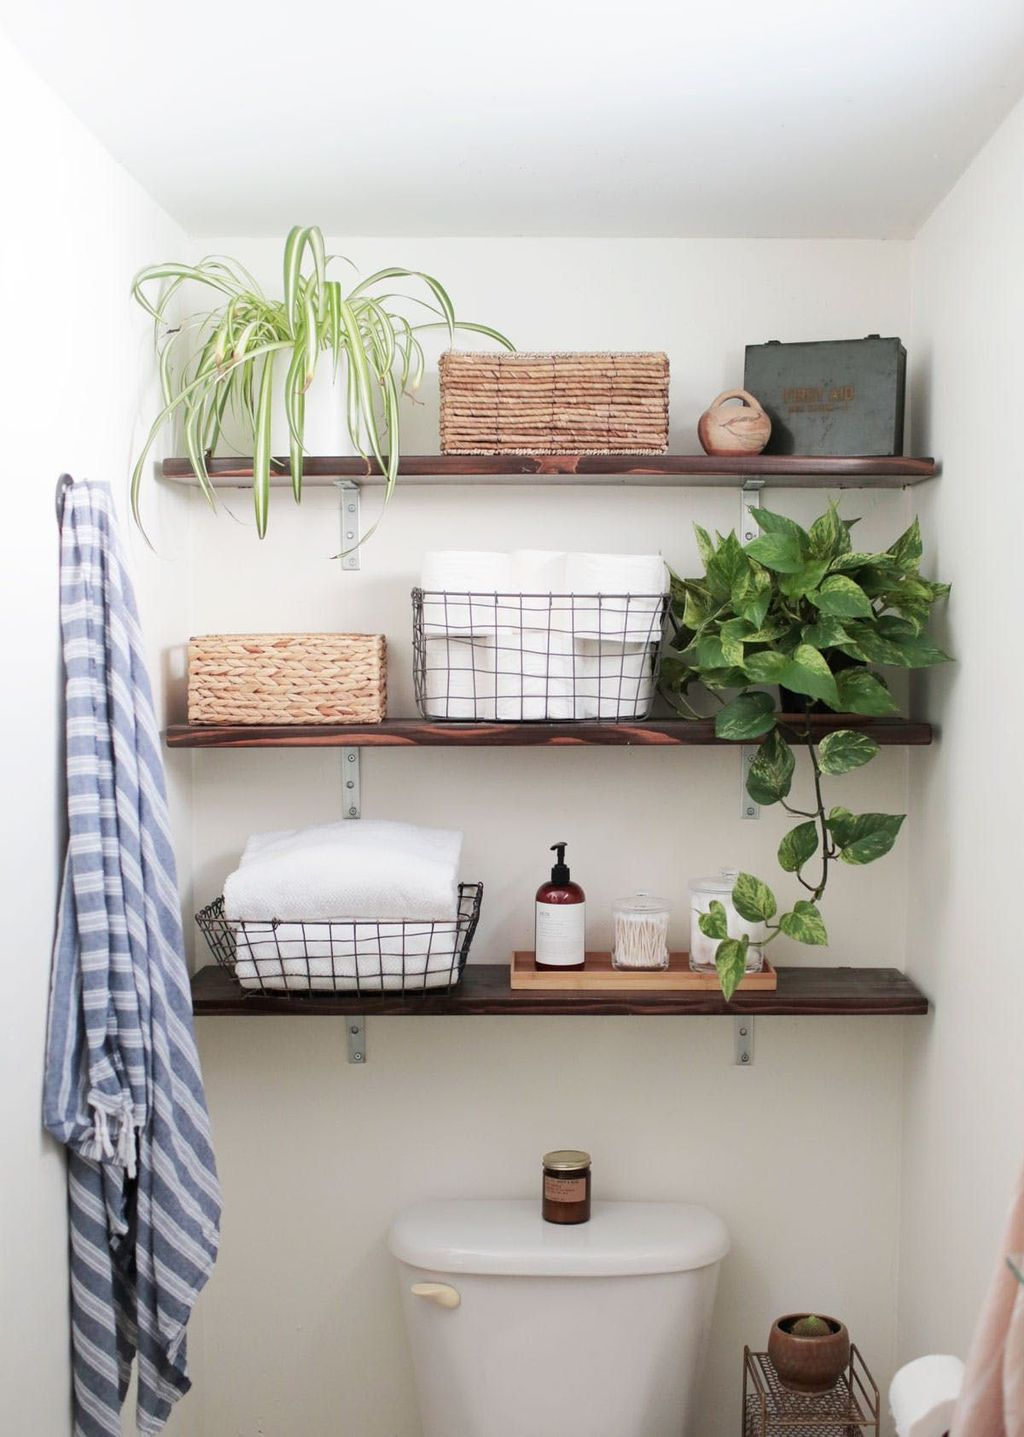 43 Affordable Diy Bathroom Storage Ideas For Small Spaces